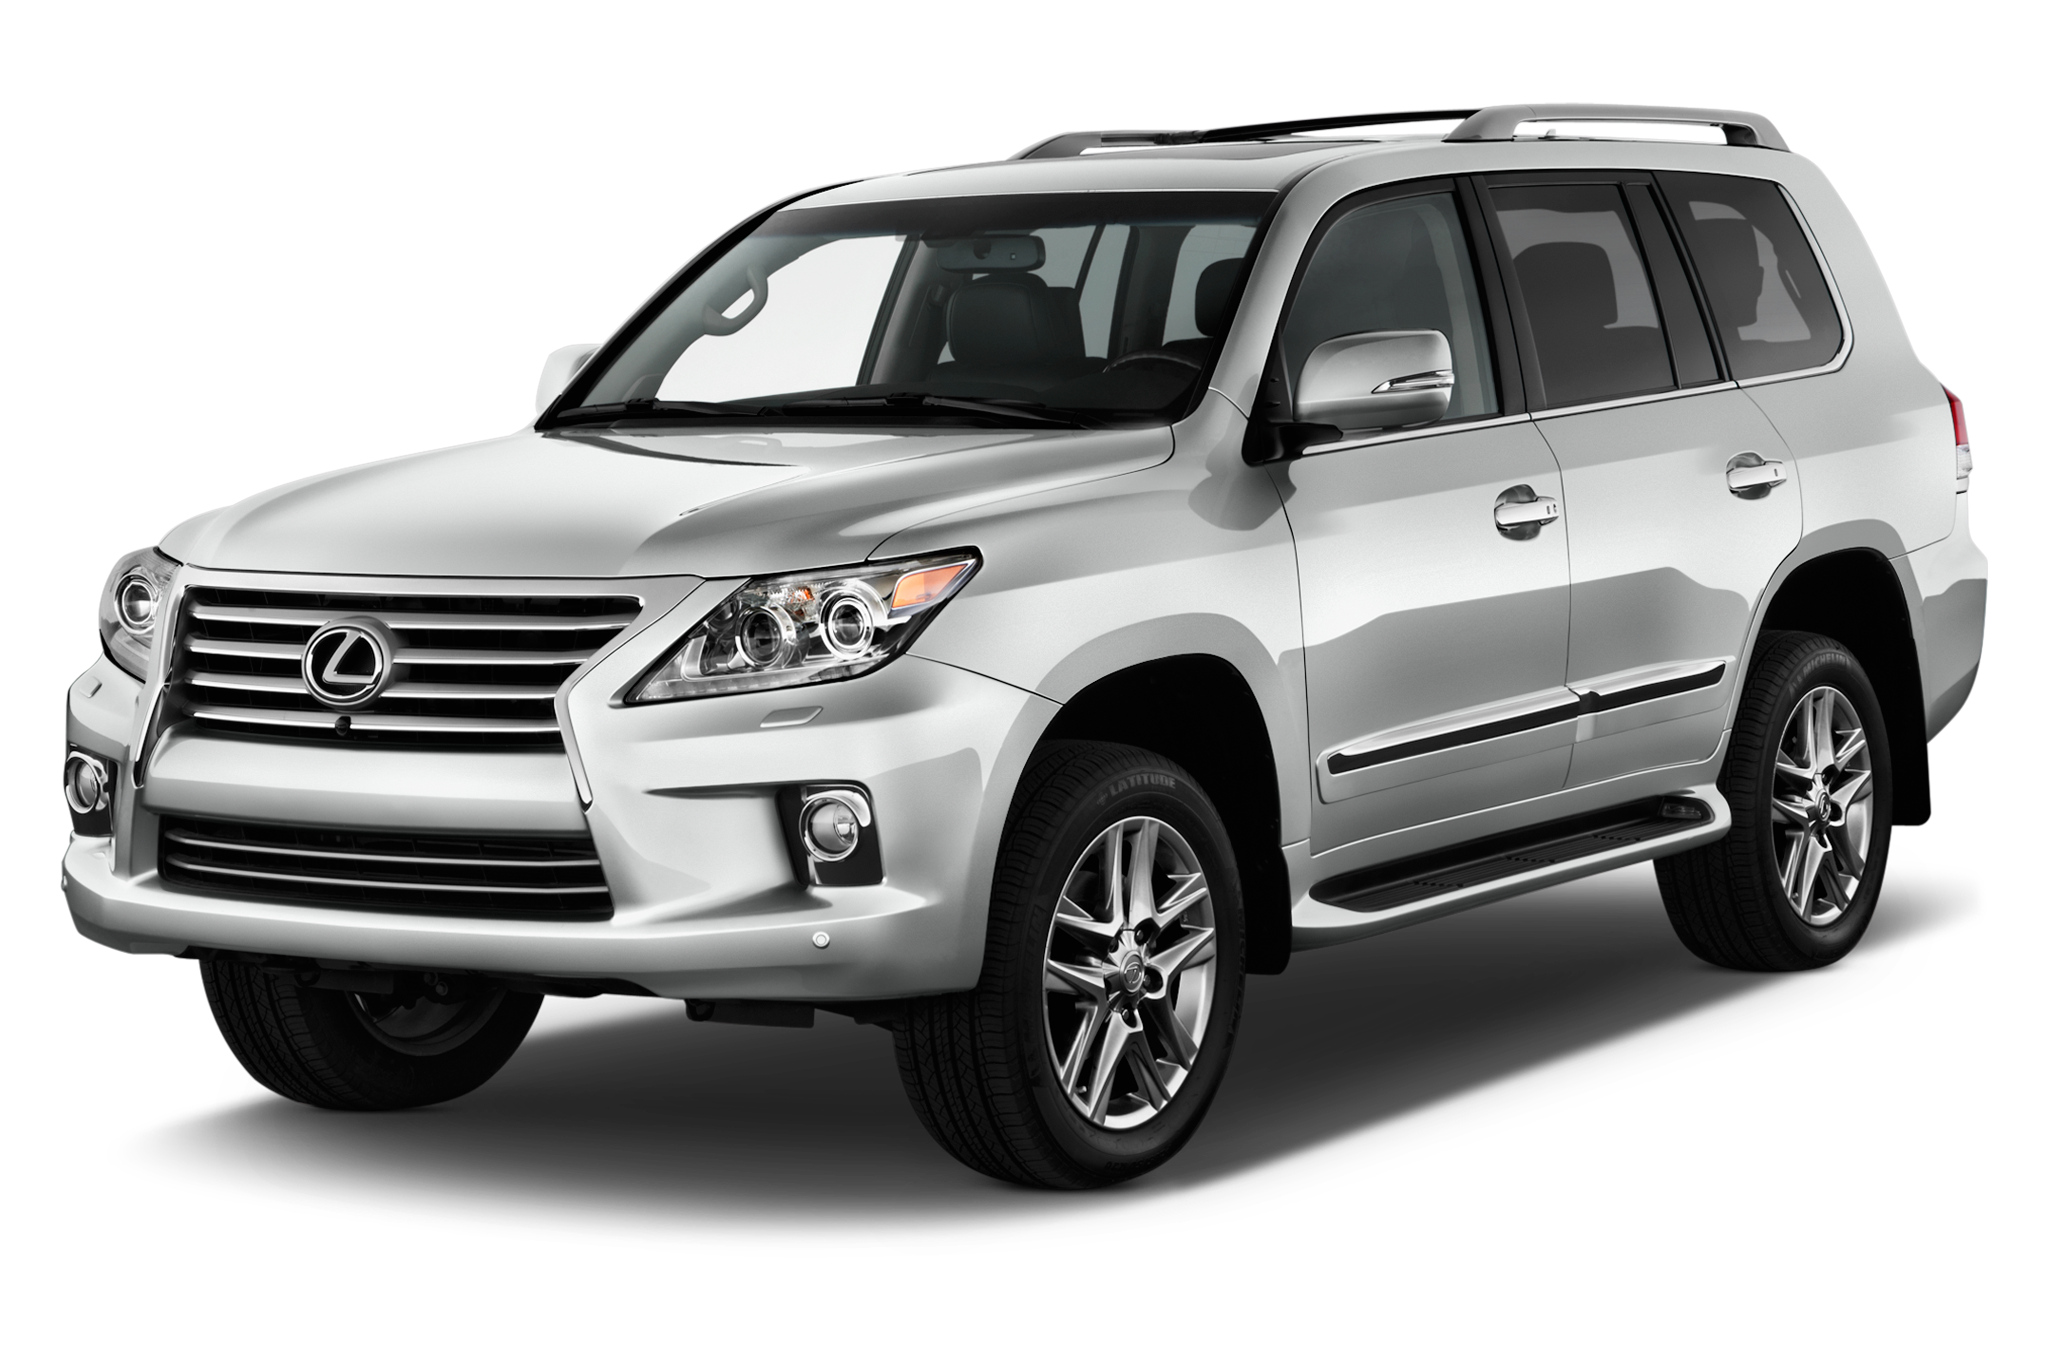 2015 lexus lx 570 review. Black Bedroom Furniture Sets. Home Design Ideas